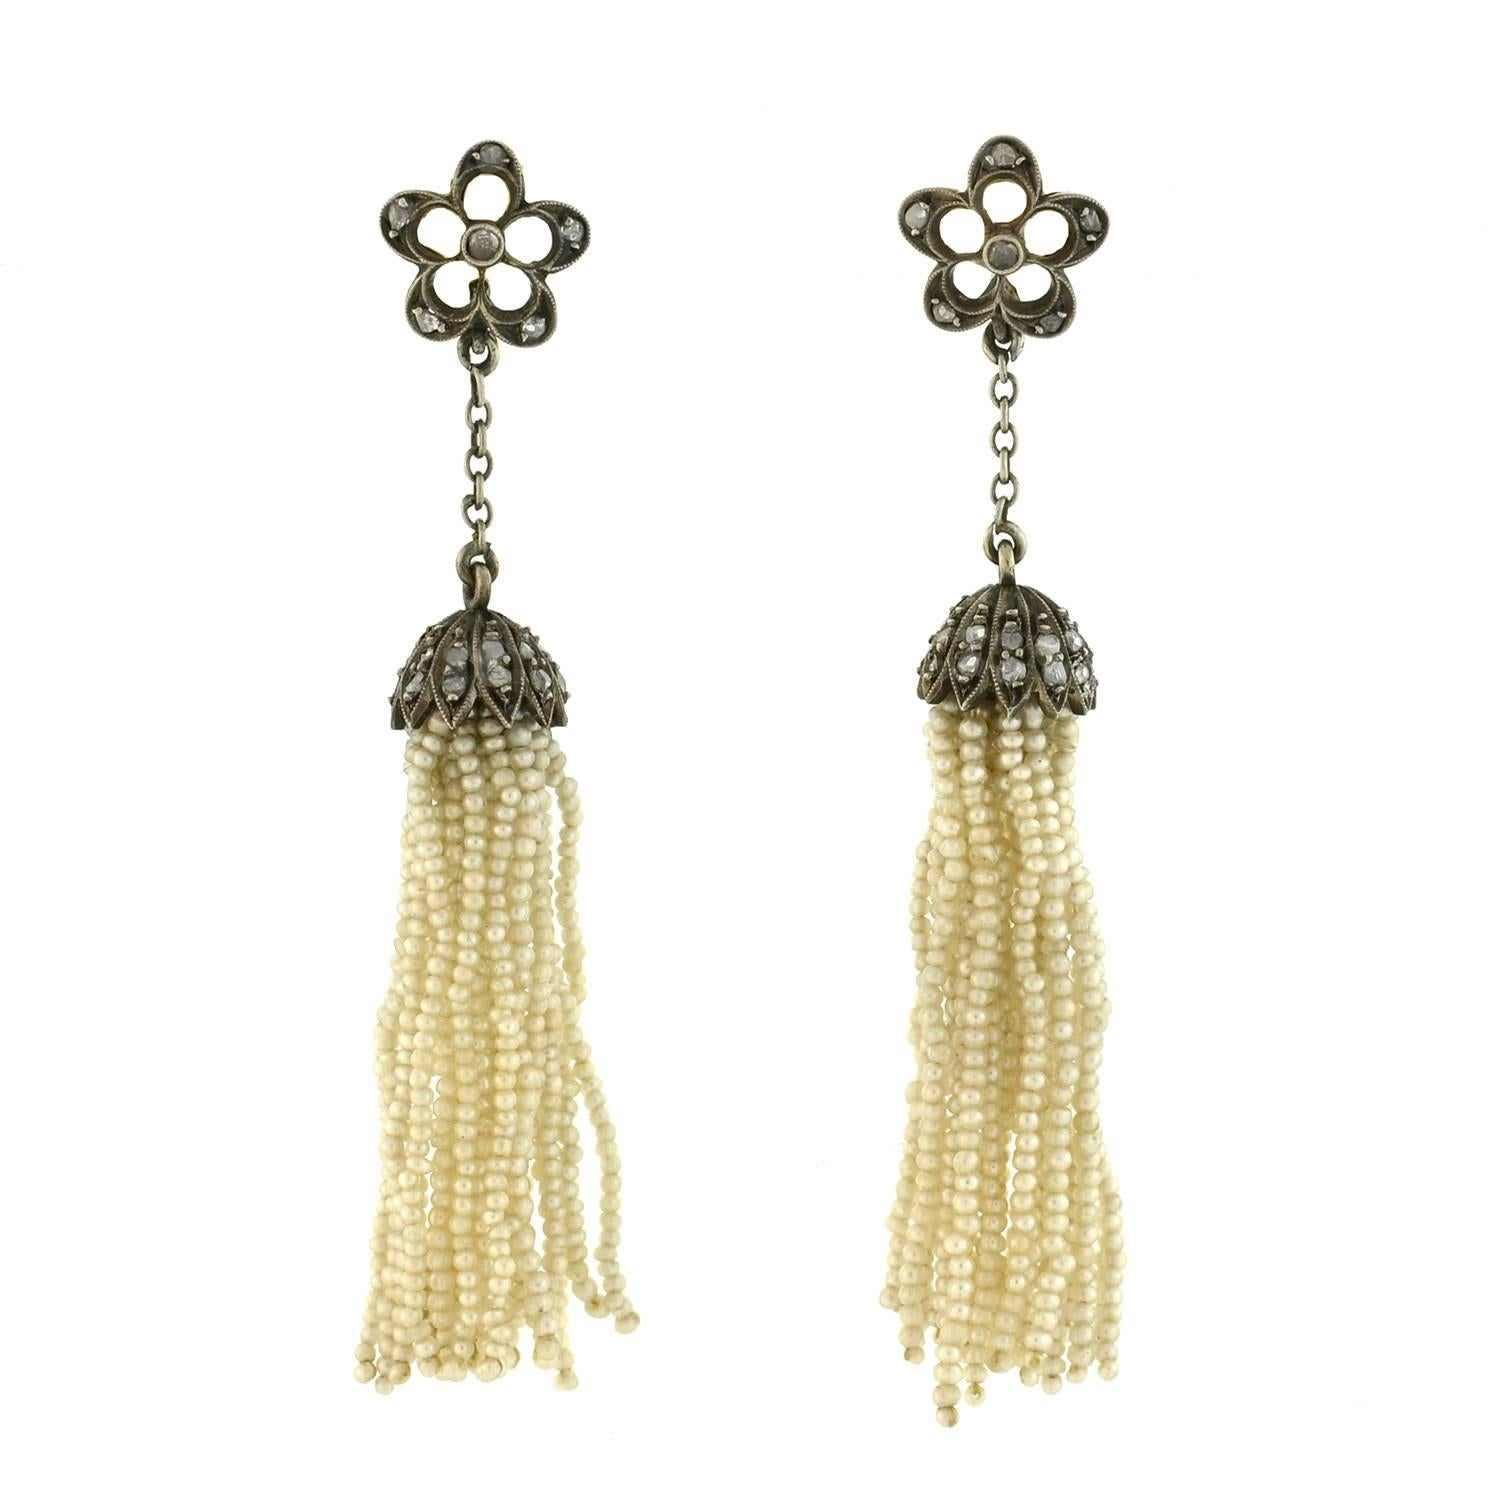 tassle vici products earrings astoria lastpart tassel gorjana bordeaux